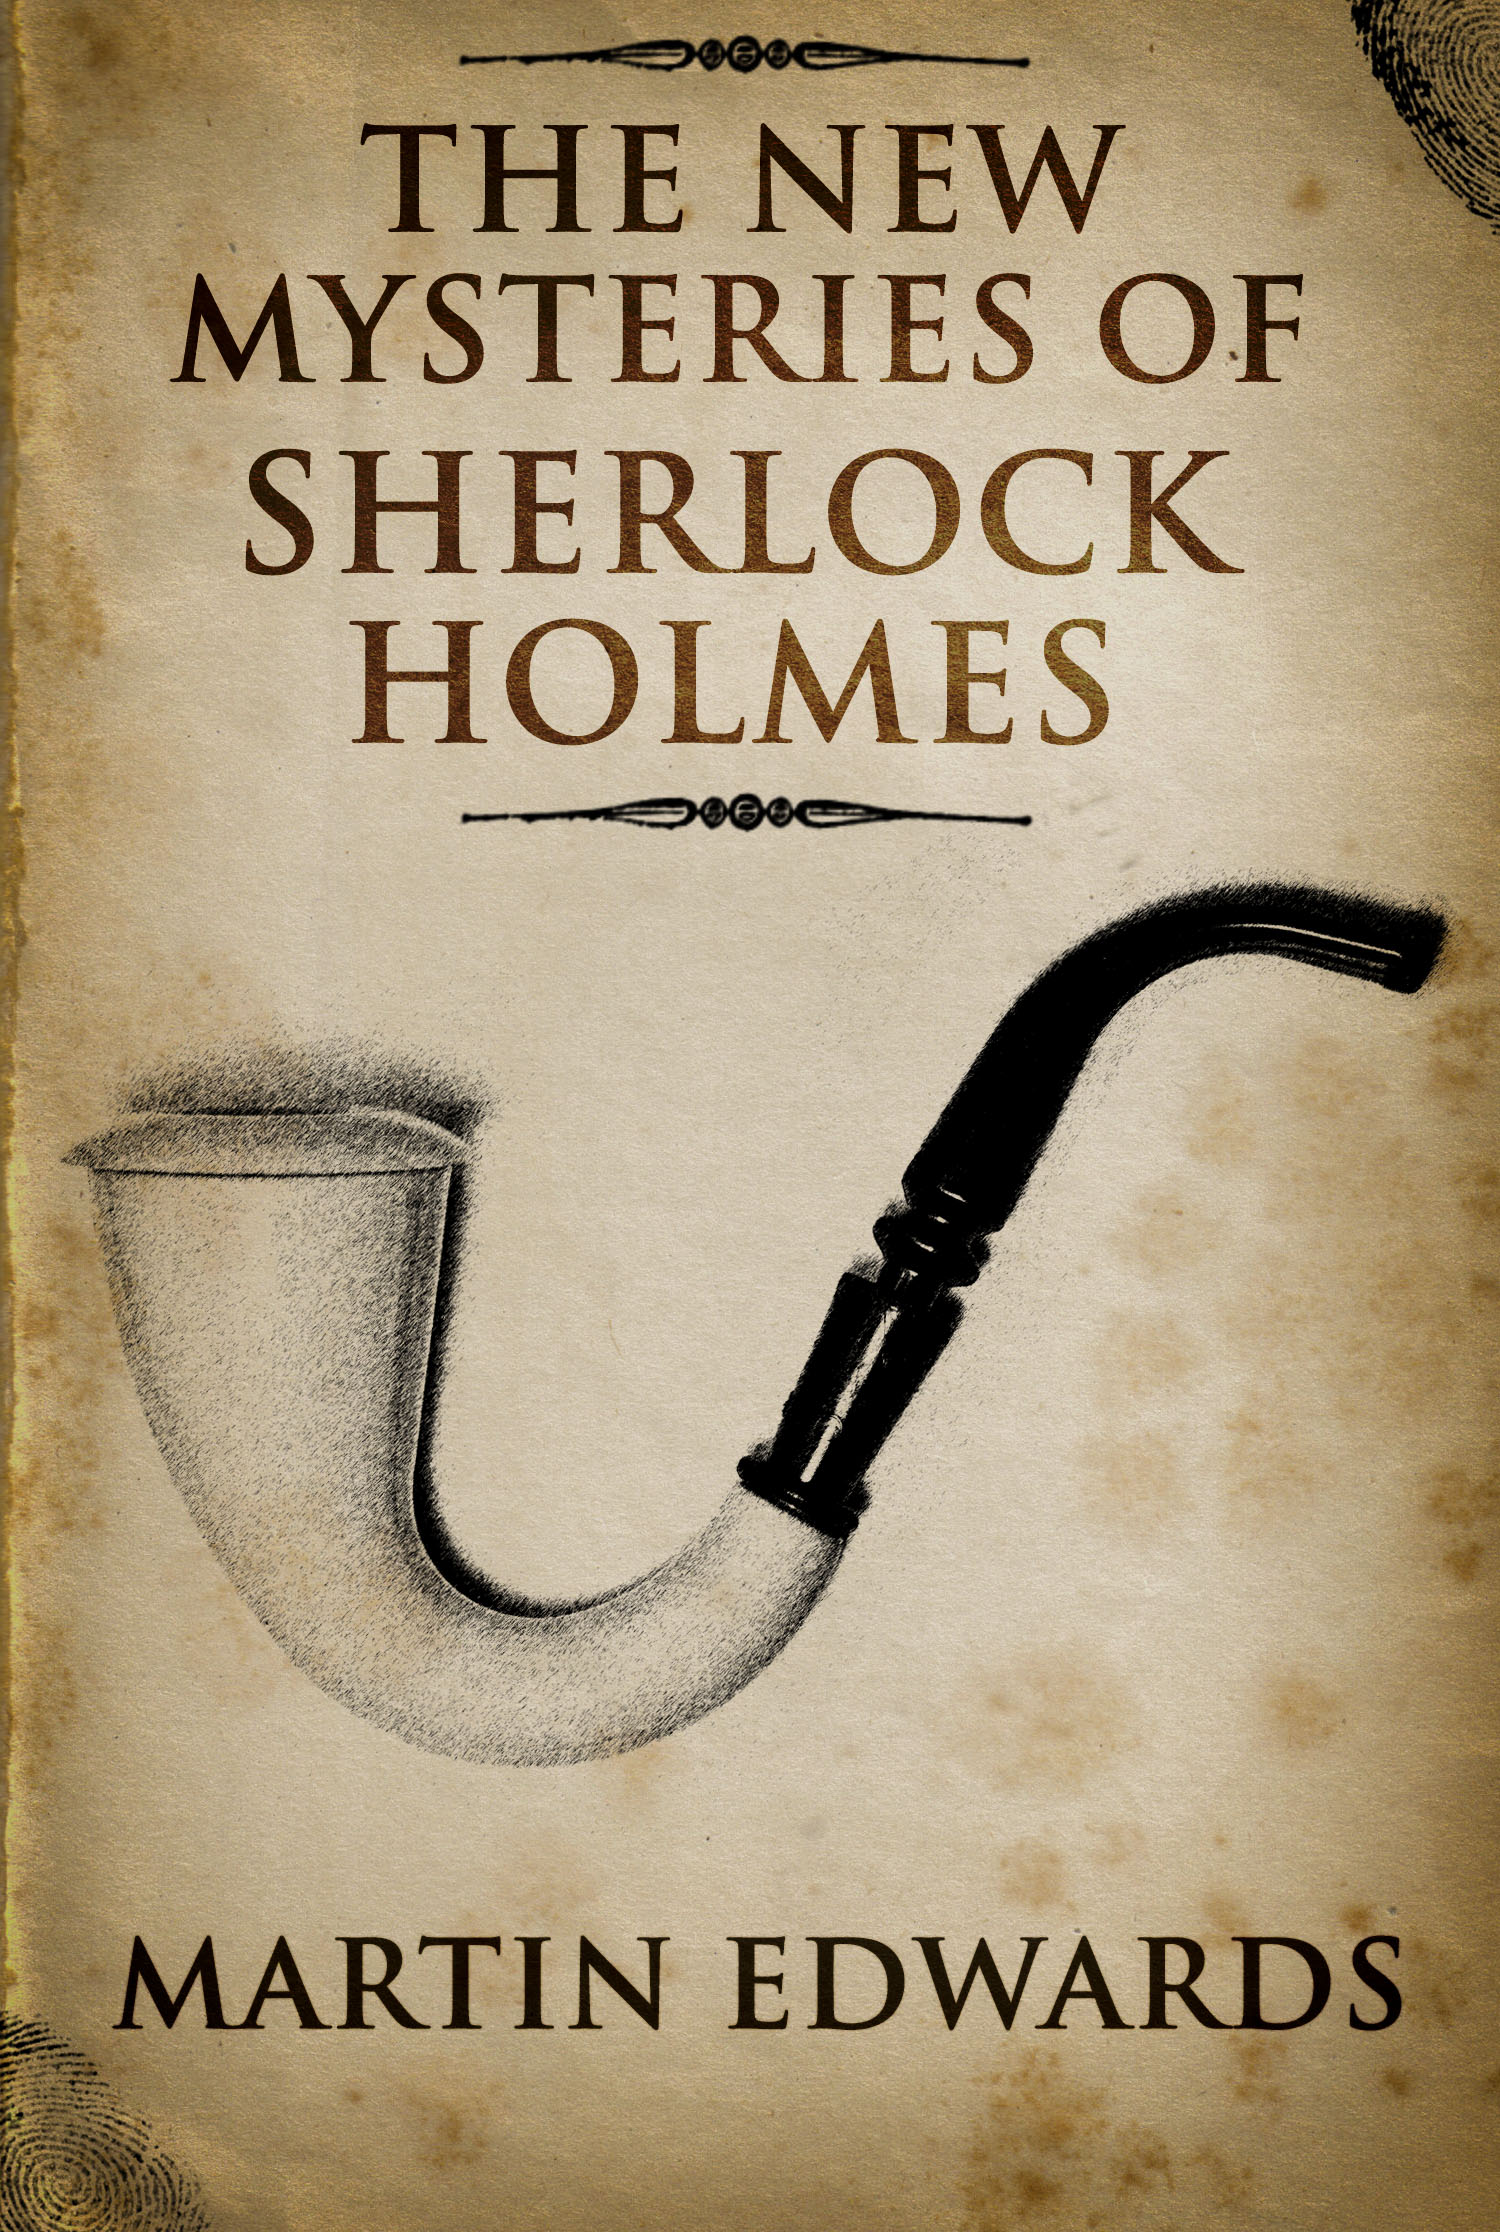 analysis of sherlock holmes Arthur conan doyle like the elusive sherlock holmes, his most famous creation, sir arthur conan doyle was a man of many contradictions.